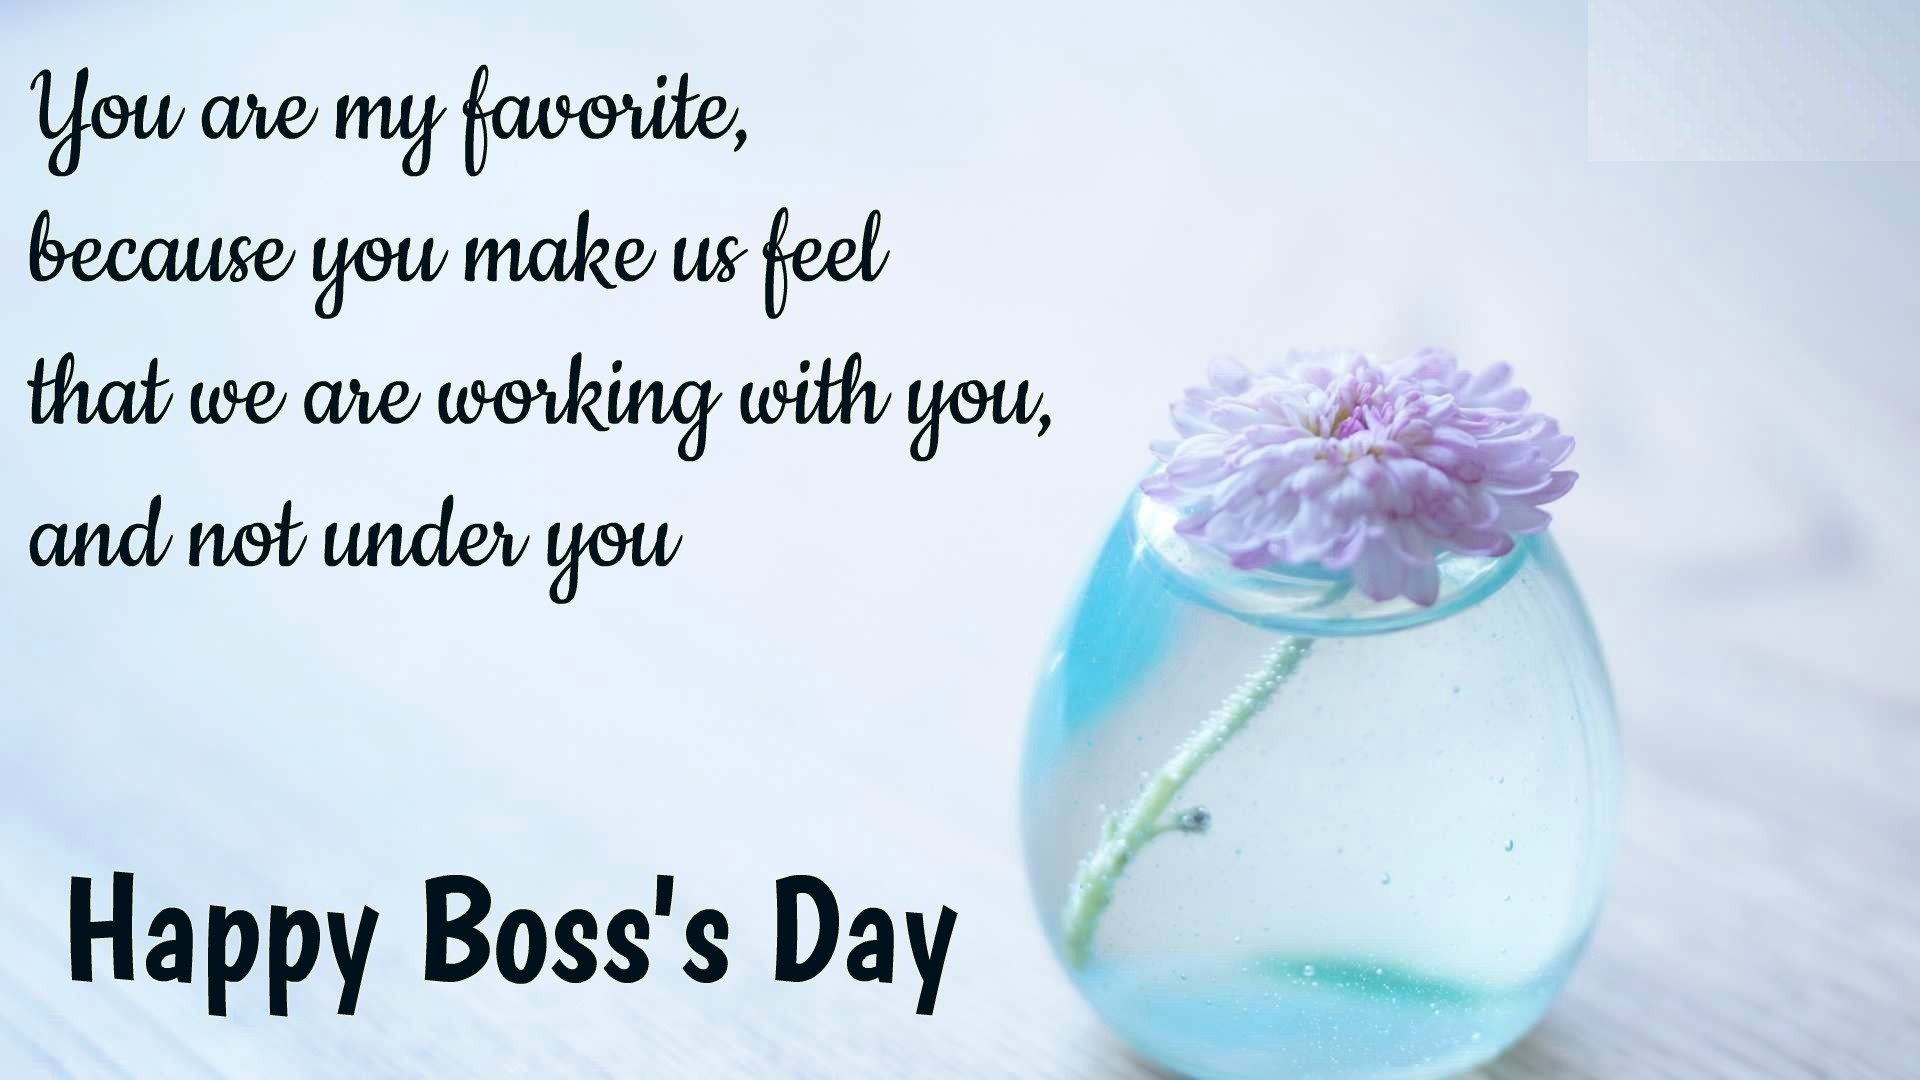 Boss Day Card With Quotes | Boss Day Images | Pinterest | Boss Day - Boss Day Cards Free Printable